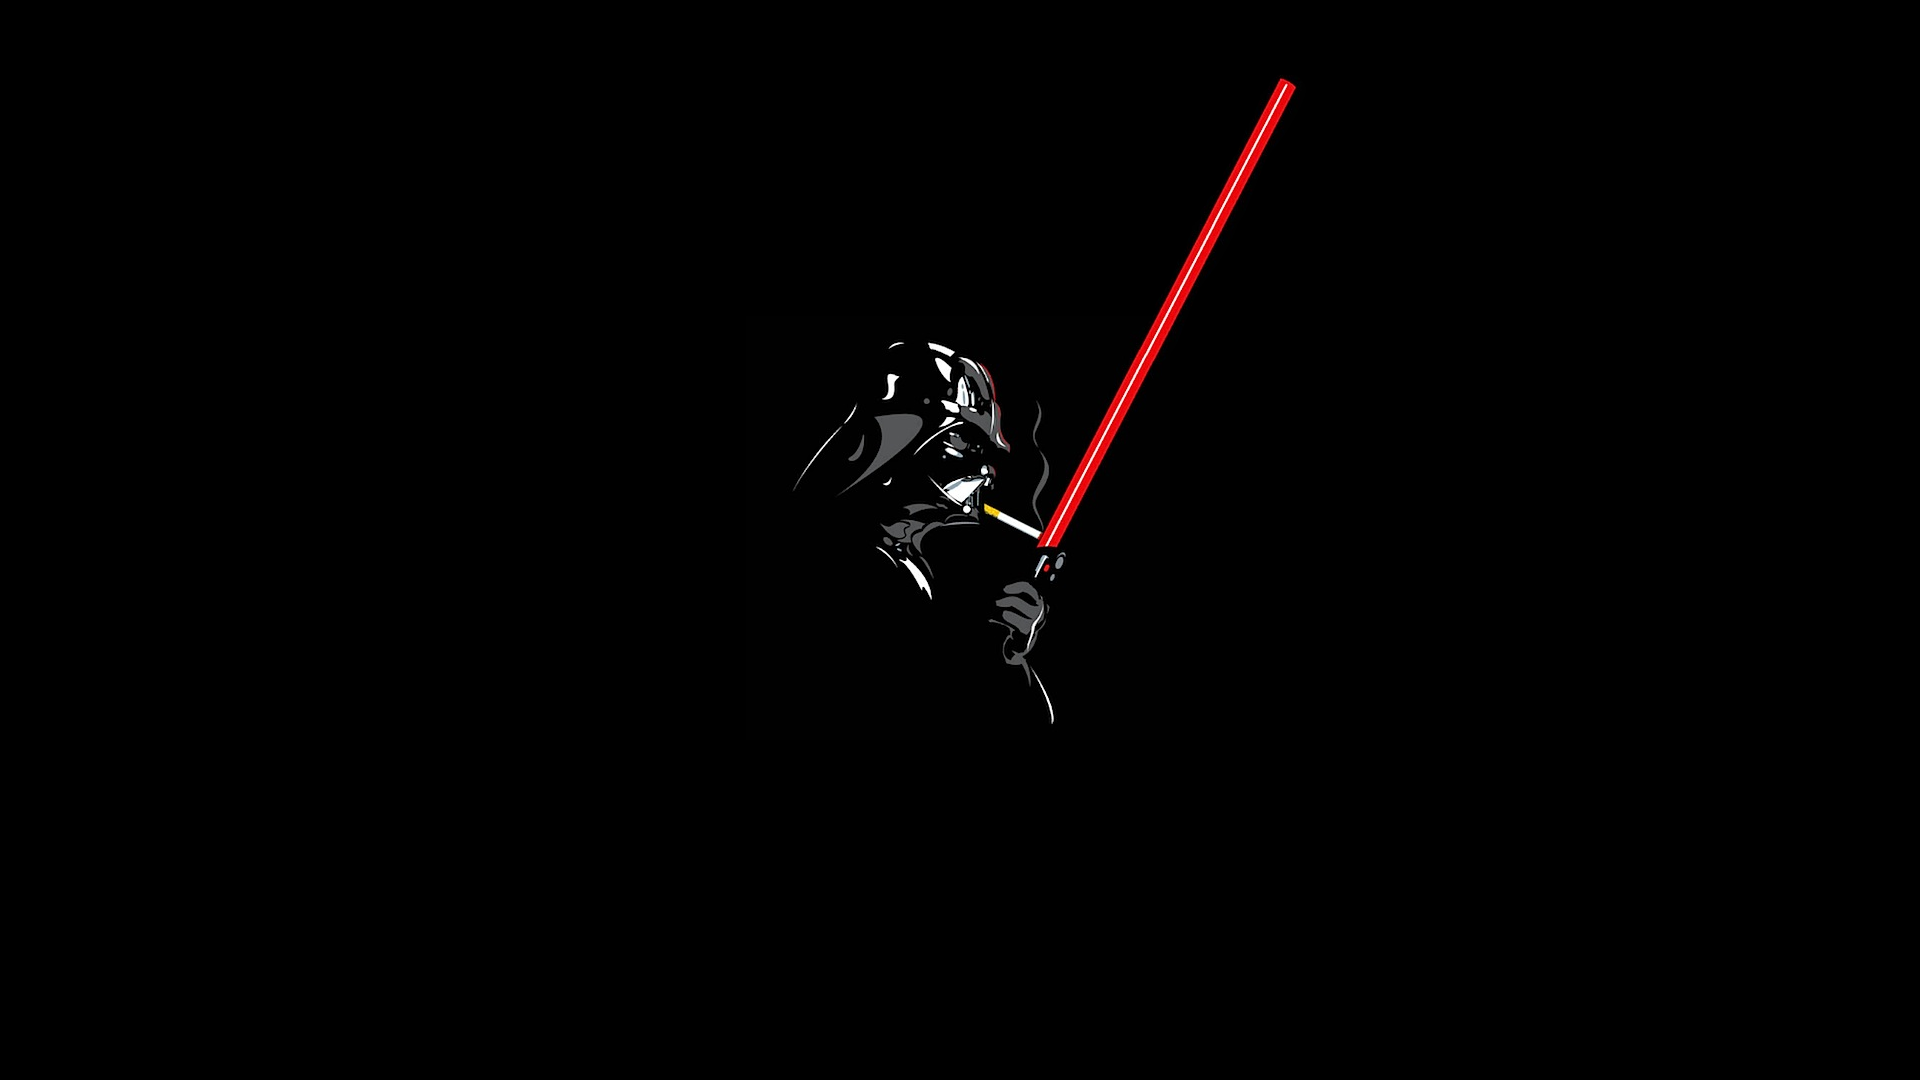 Single Colour And Simple Wallpapers Imgur Star Wars Wallpaper Darth Vader Wallpaper Darth Vader